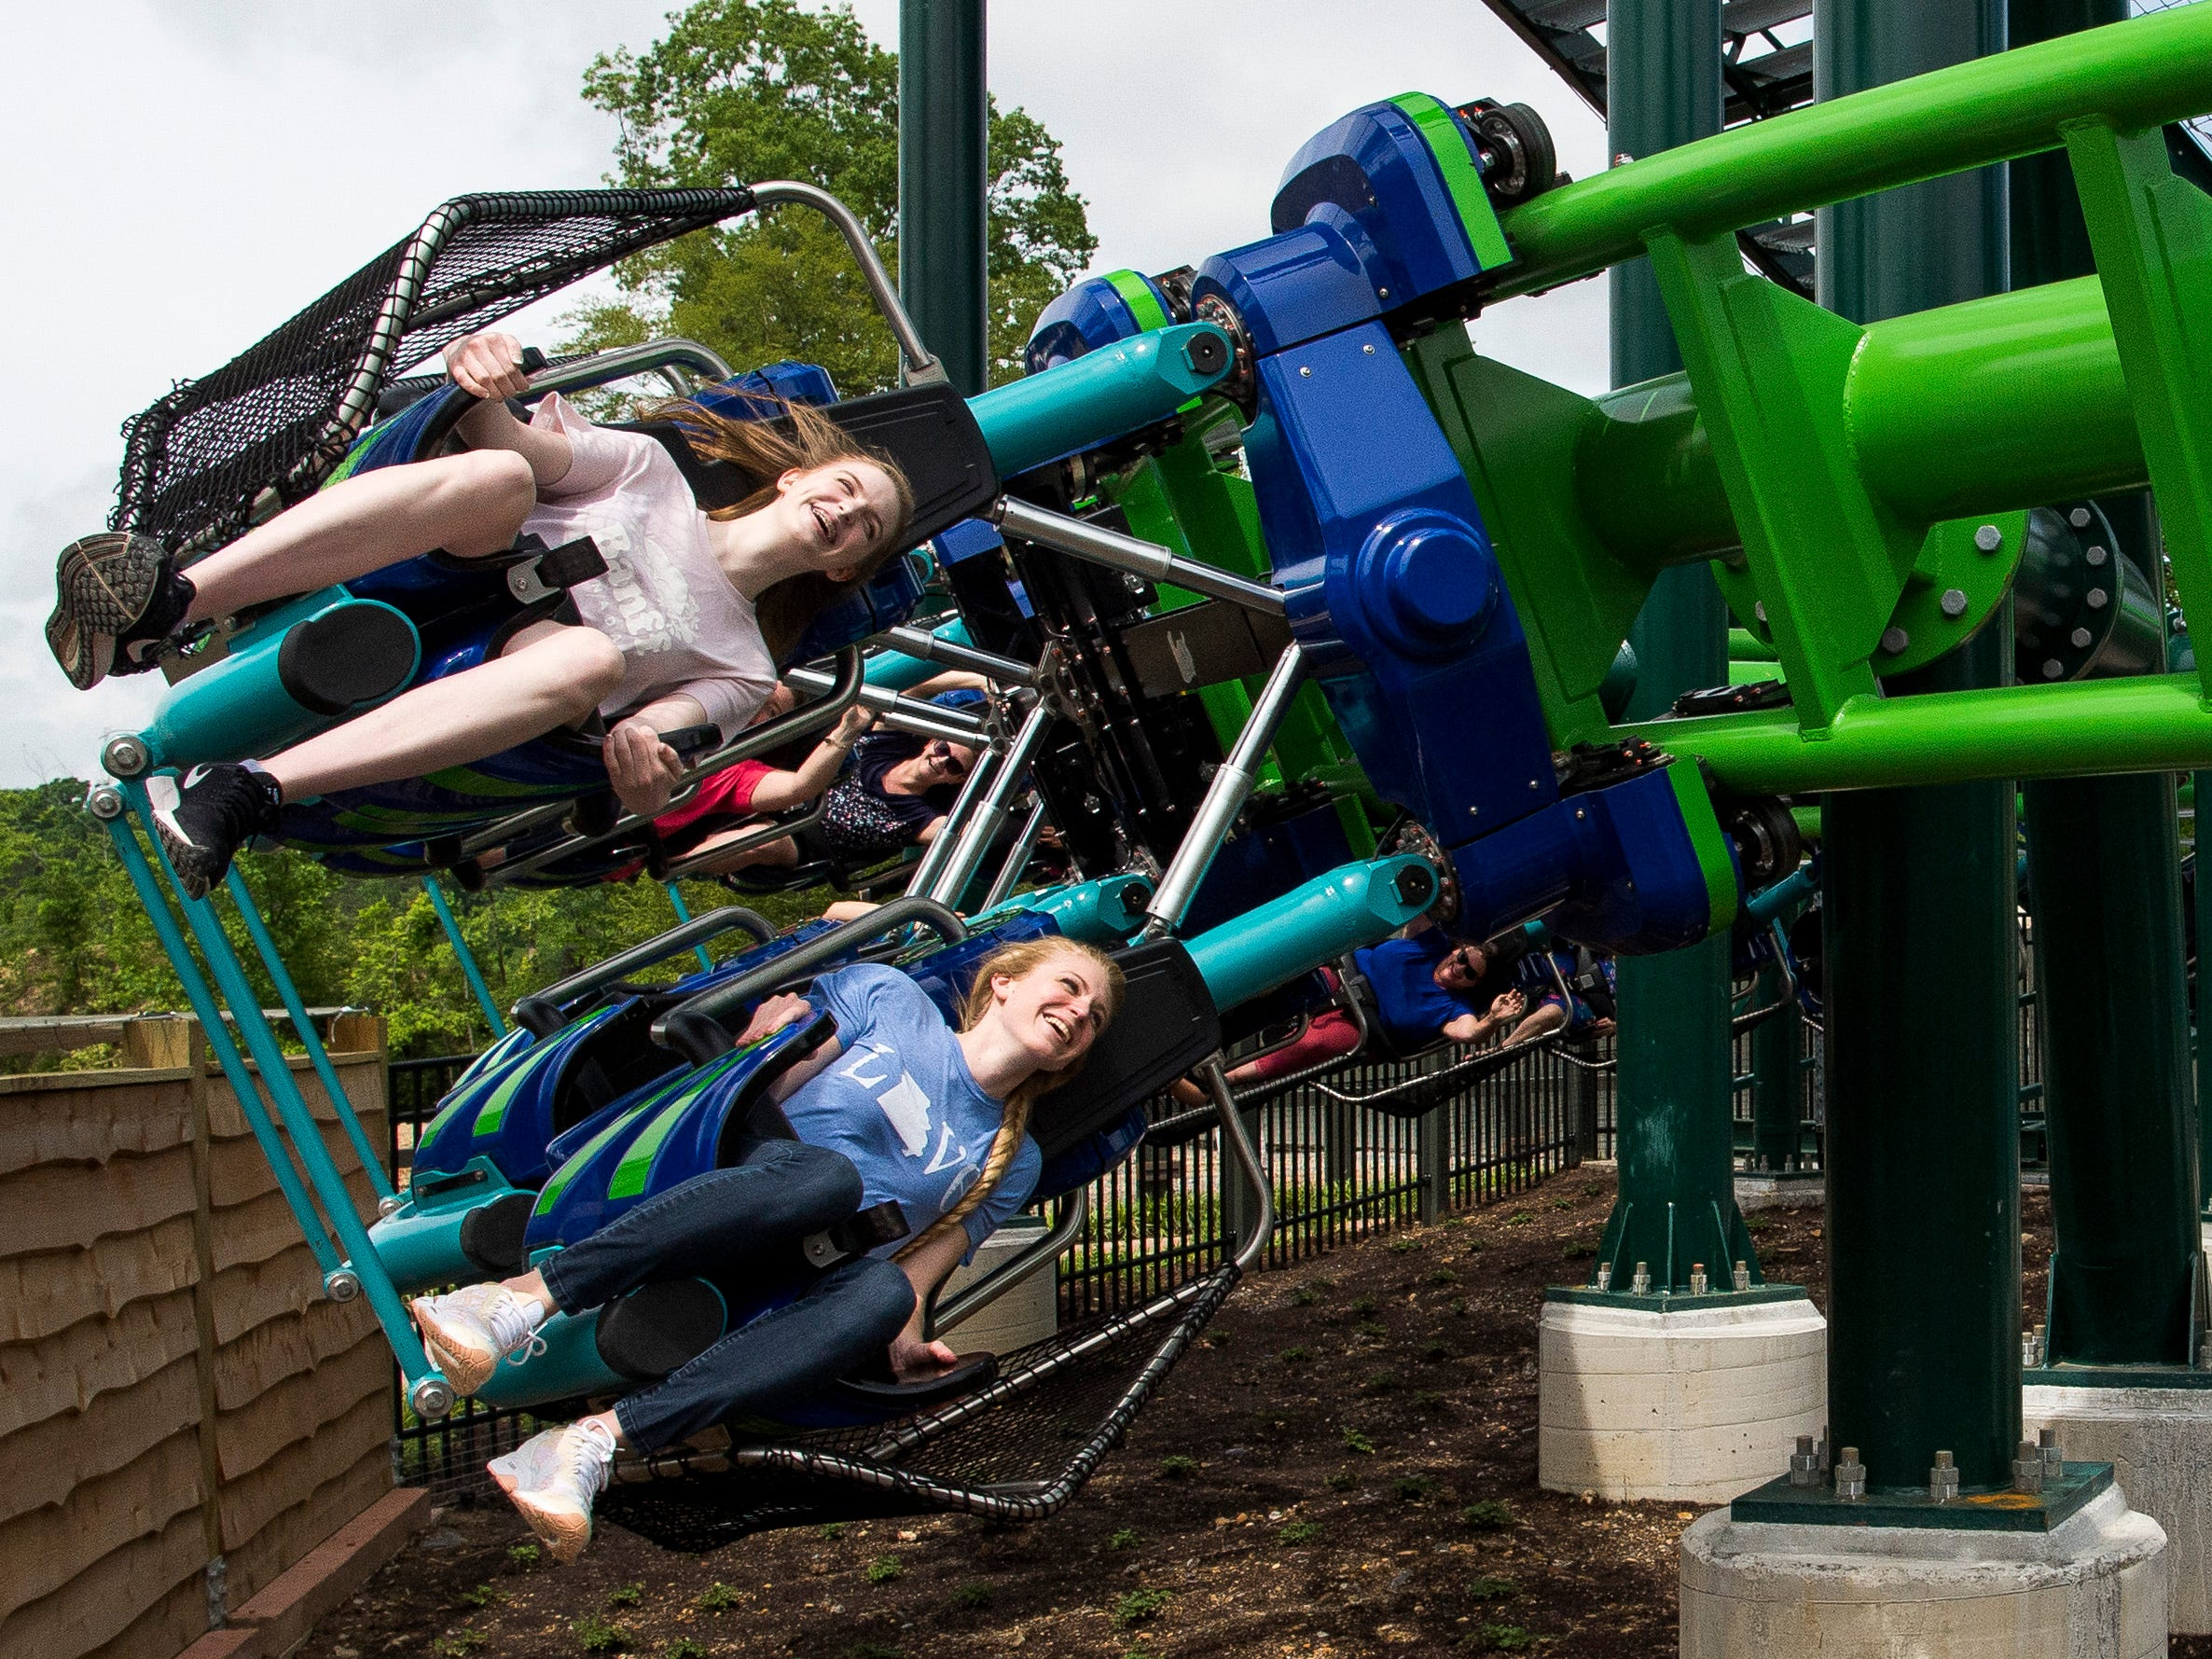 Guests enjoy The Dragonflier roller coaster during the grand opening of Dollywood's new Wildwood Grove expansion on Friday, May 10, 2019.